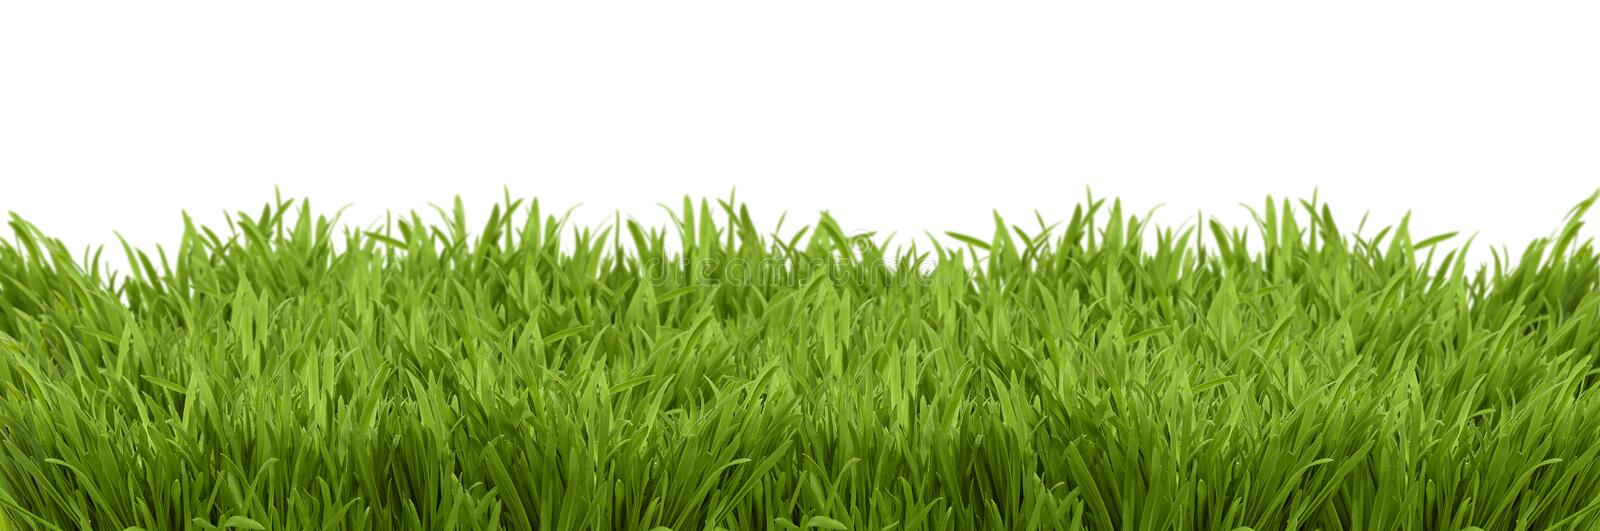 Download A Perspective View Of A Green Lush Royalty Free Stock Image - Image: 17309026